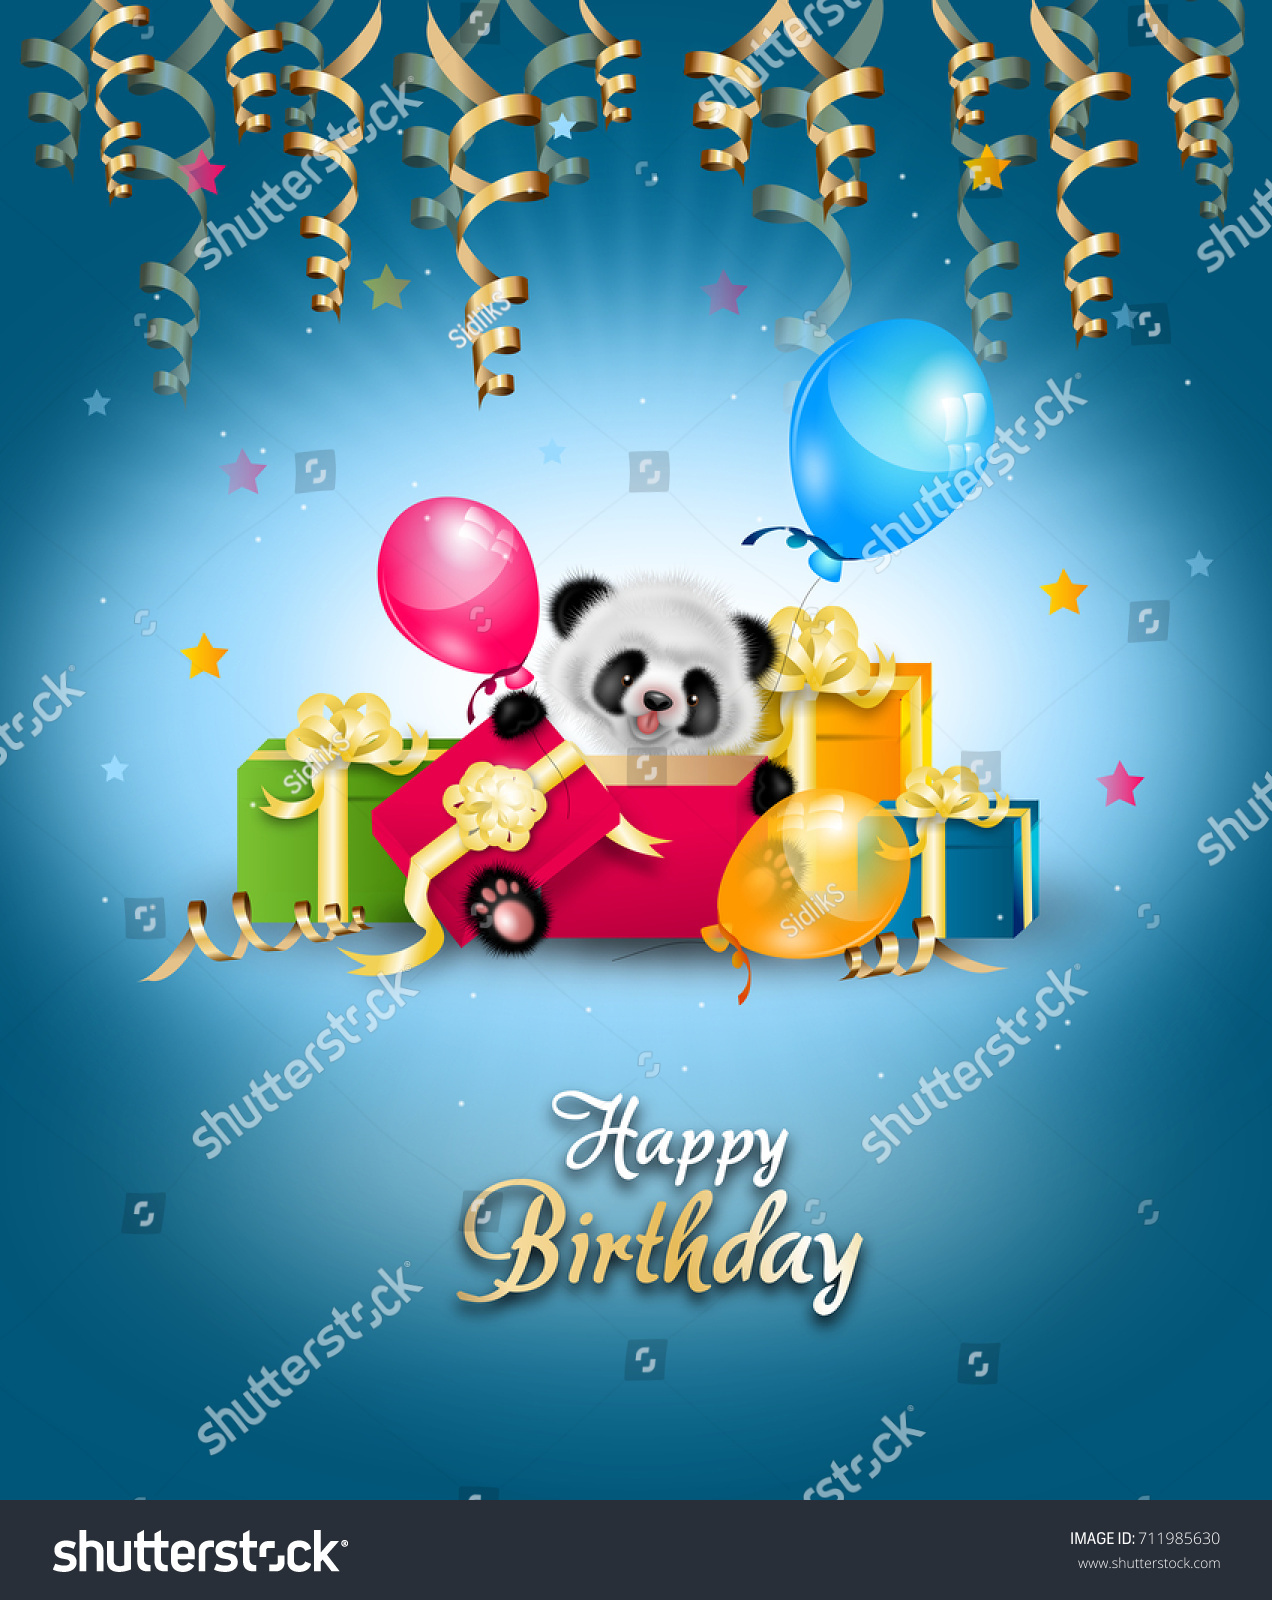 happy birthday greeting card with panda opening gifts